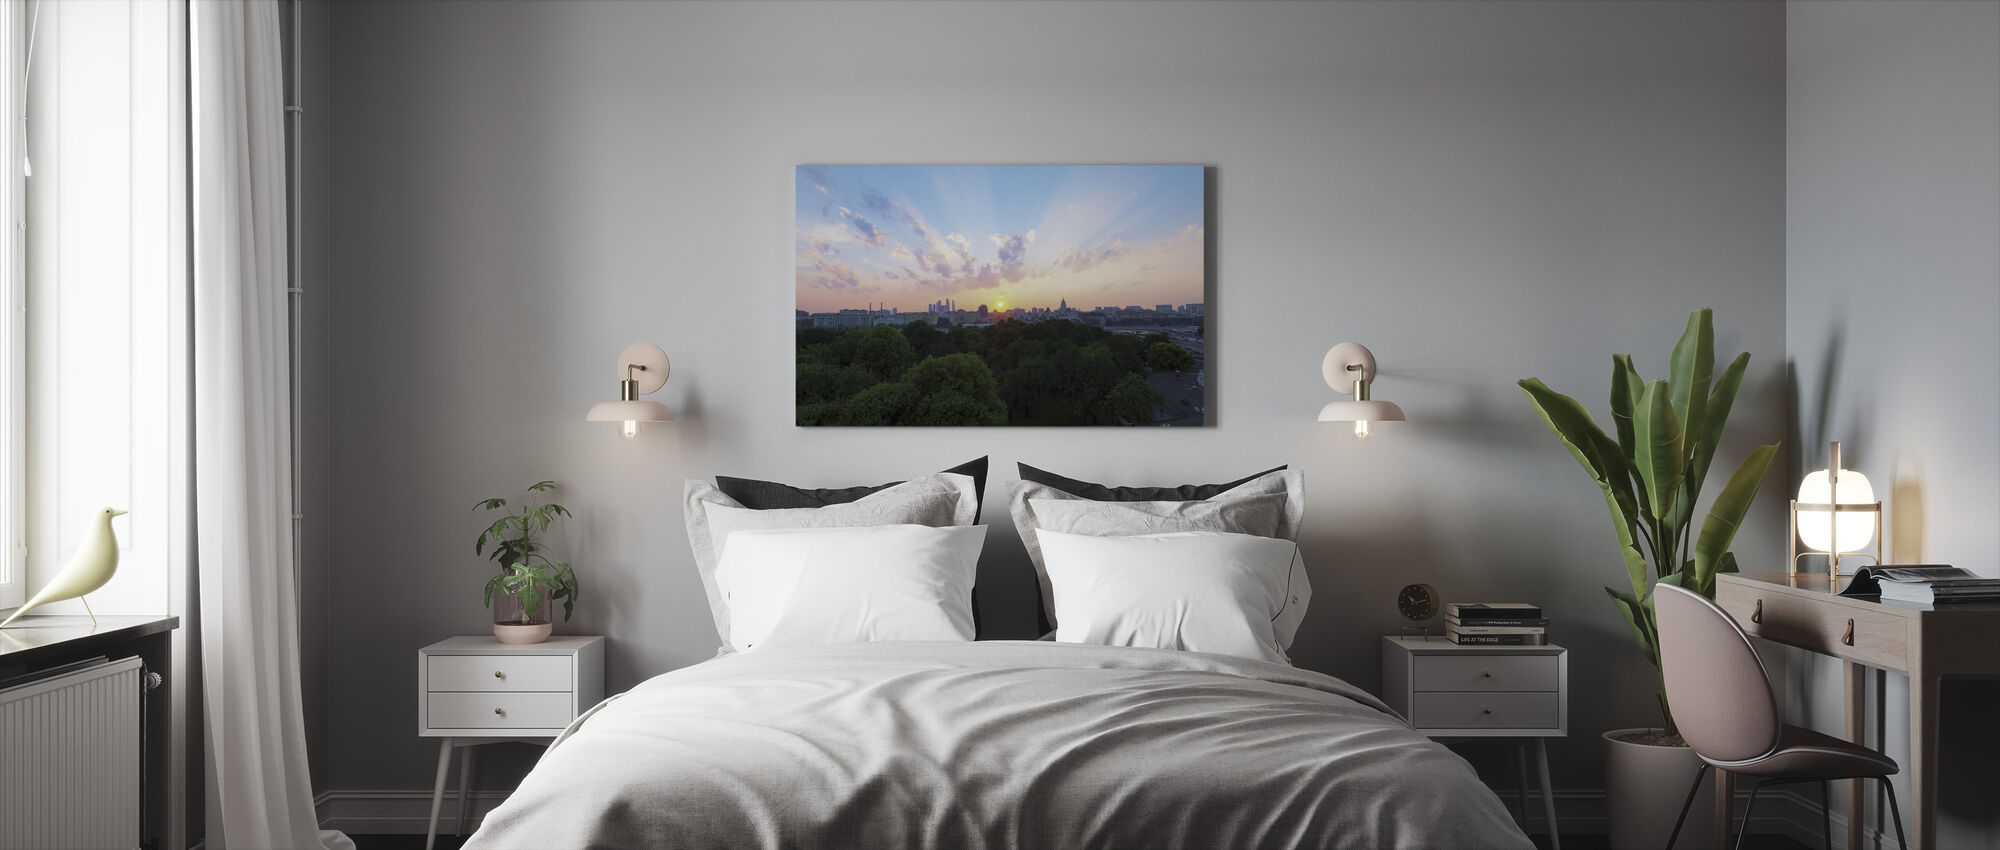 Pastel Sunset in Moscow - Canvas print - Bedroom